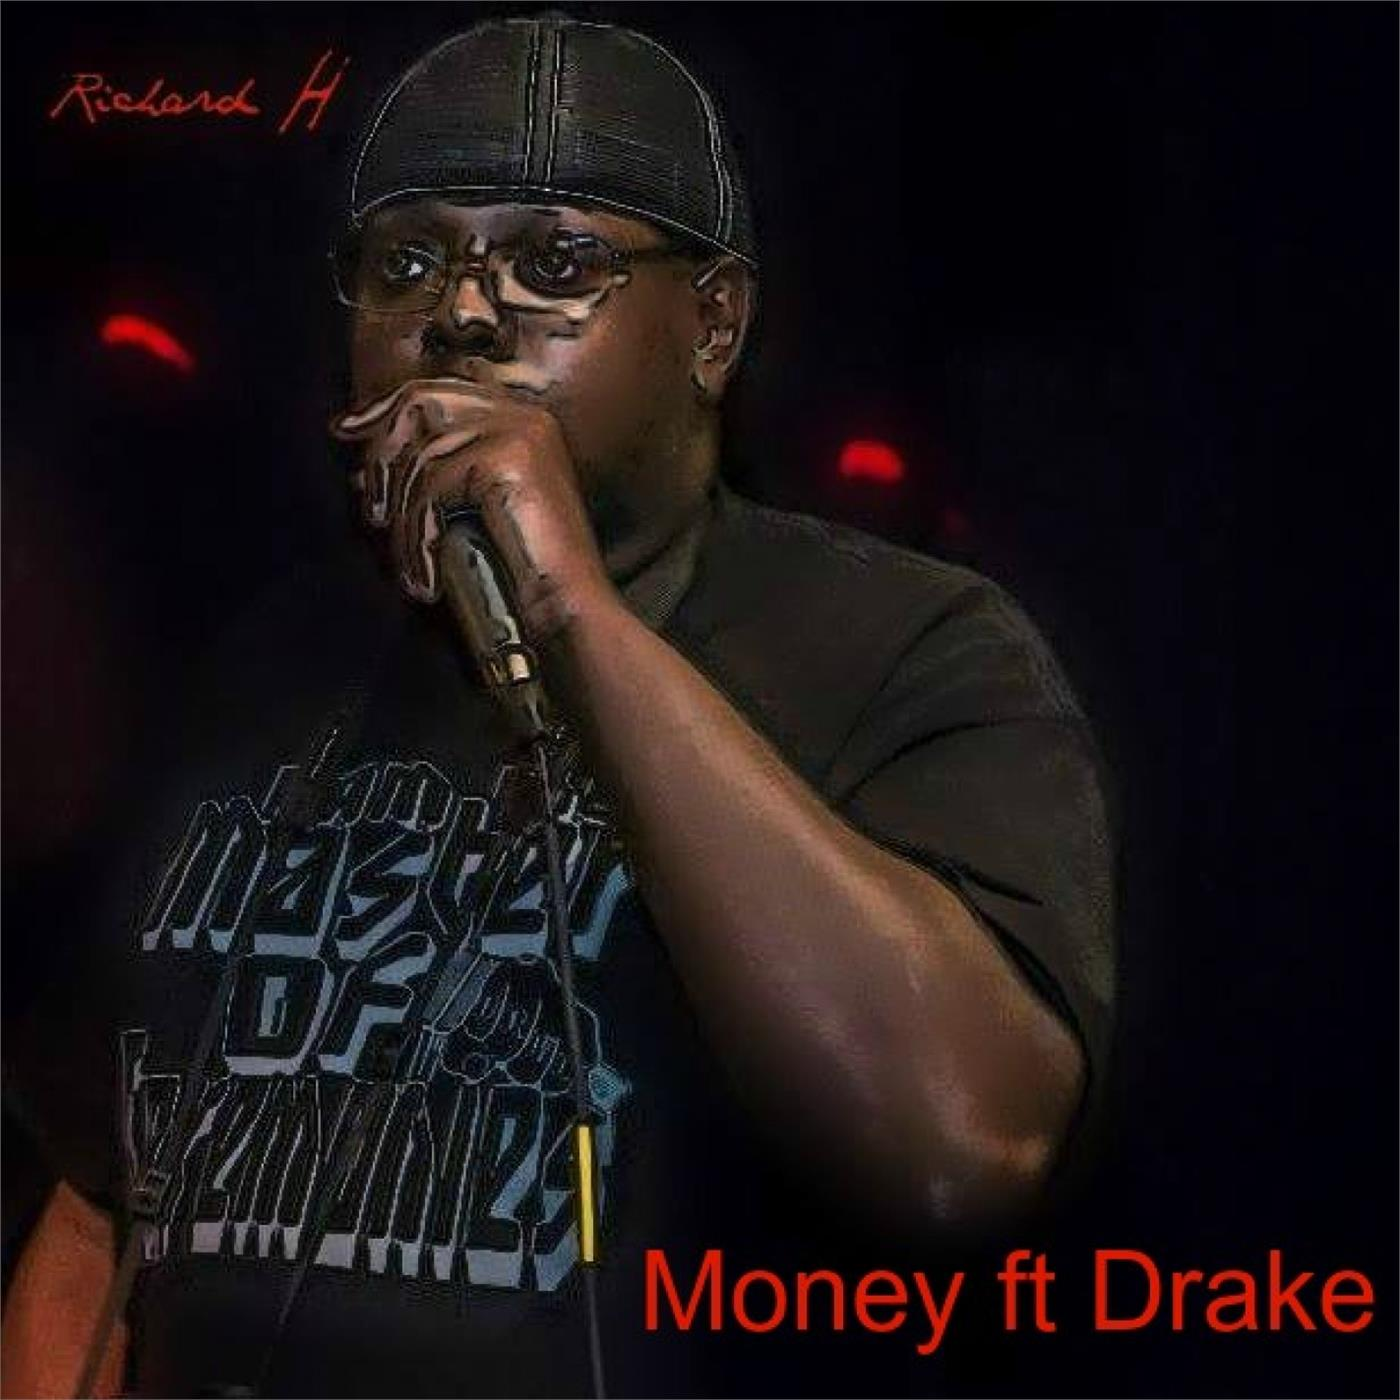 Richard H - Money ft Drake